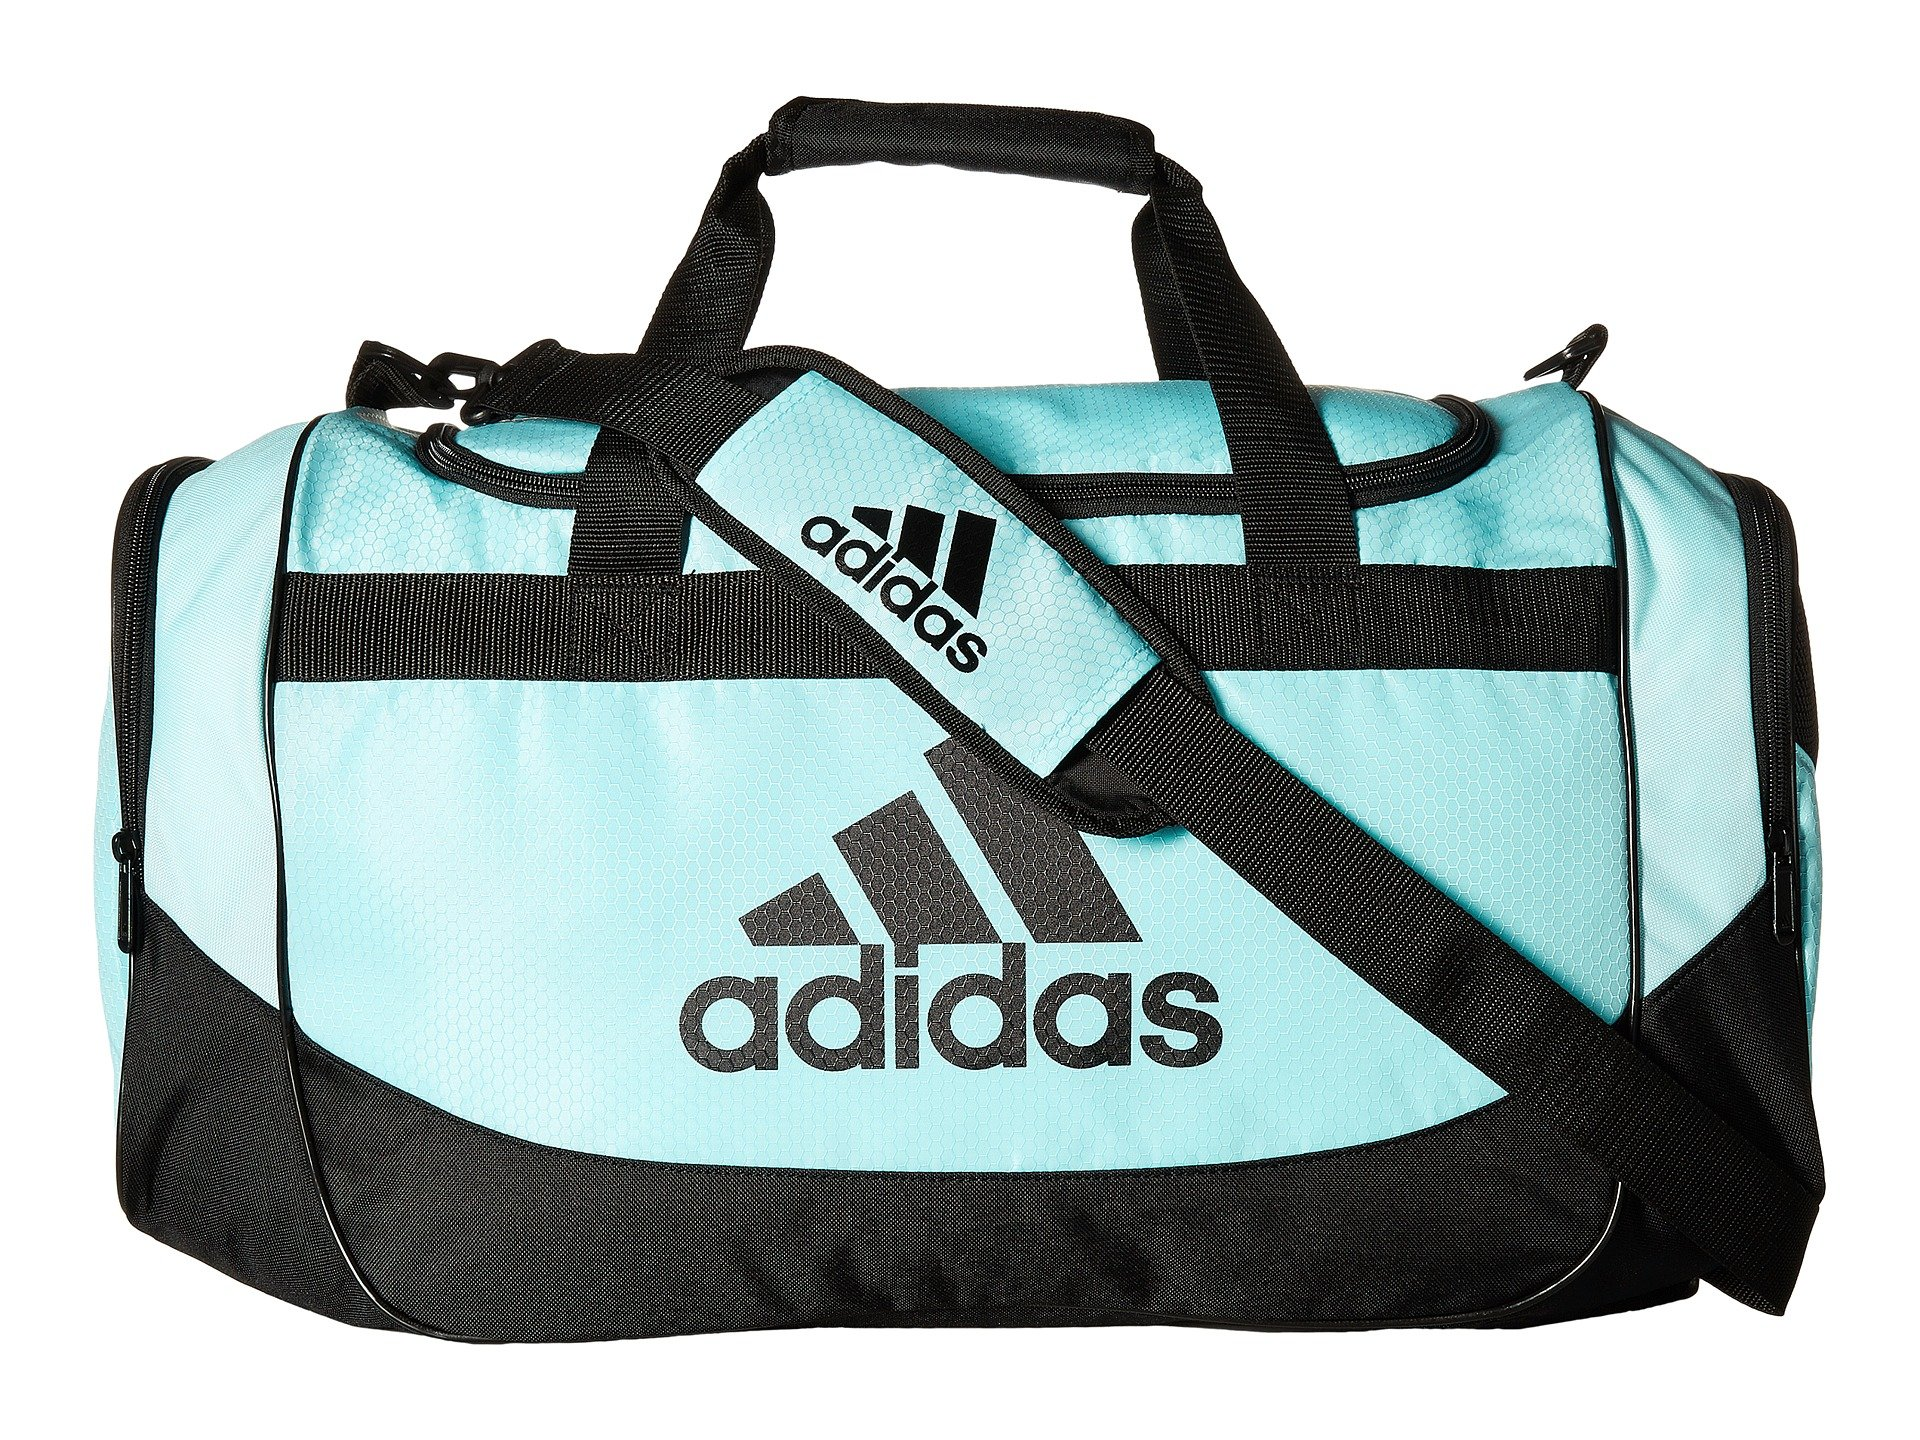 adidas Unisex Medium Defense Duffel Clear Aqua/Black One Size